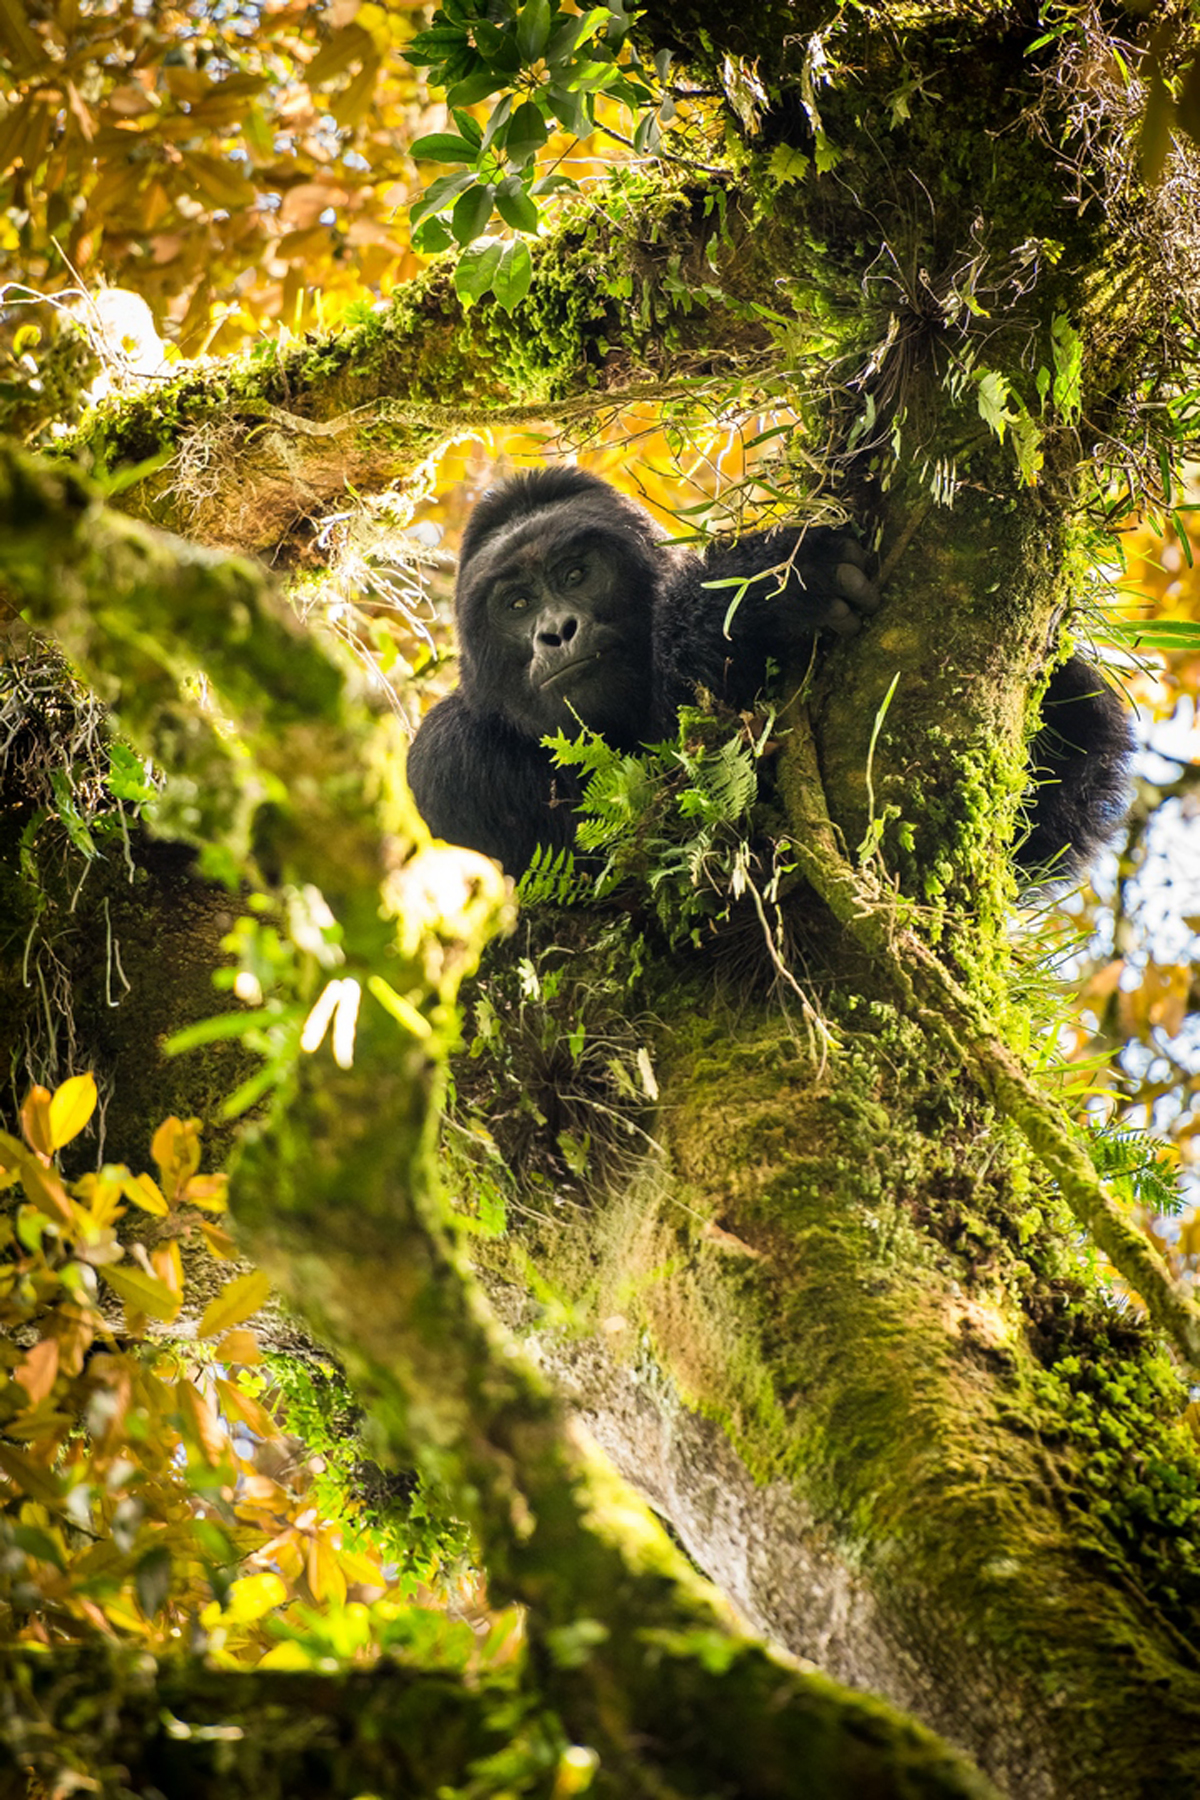 'I see you' – a silverback mountain gorilla from a newly habituated group keeps a close eye on the photographer in Bwindi Impenetrable National Park, Uganda © Guillaume Niger